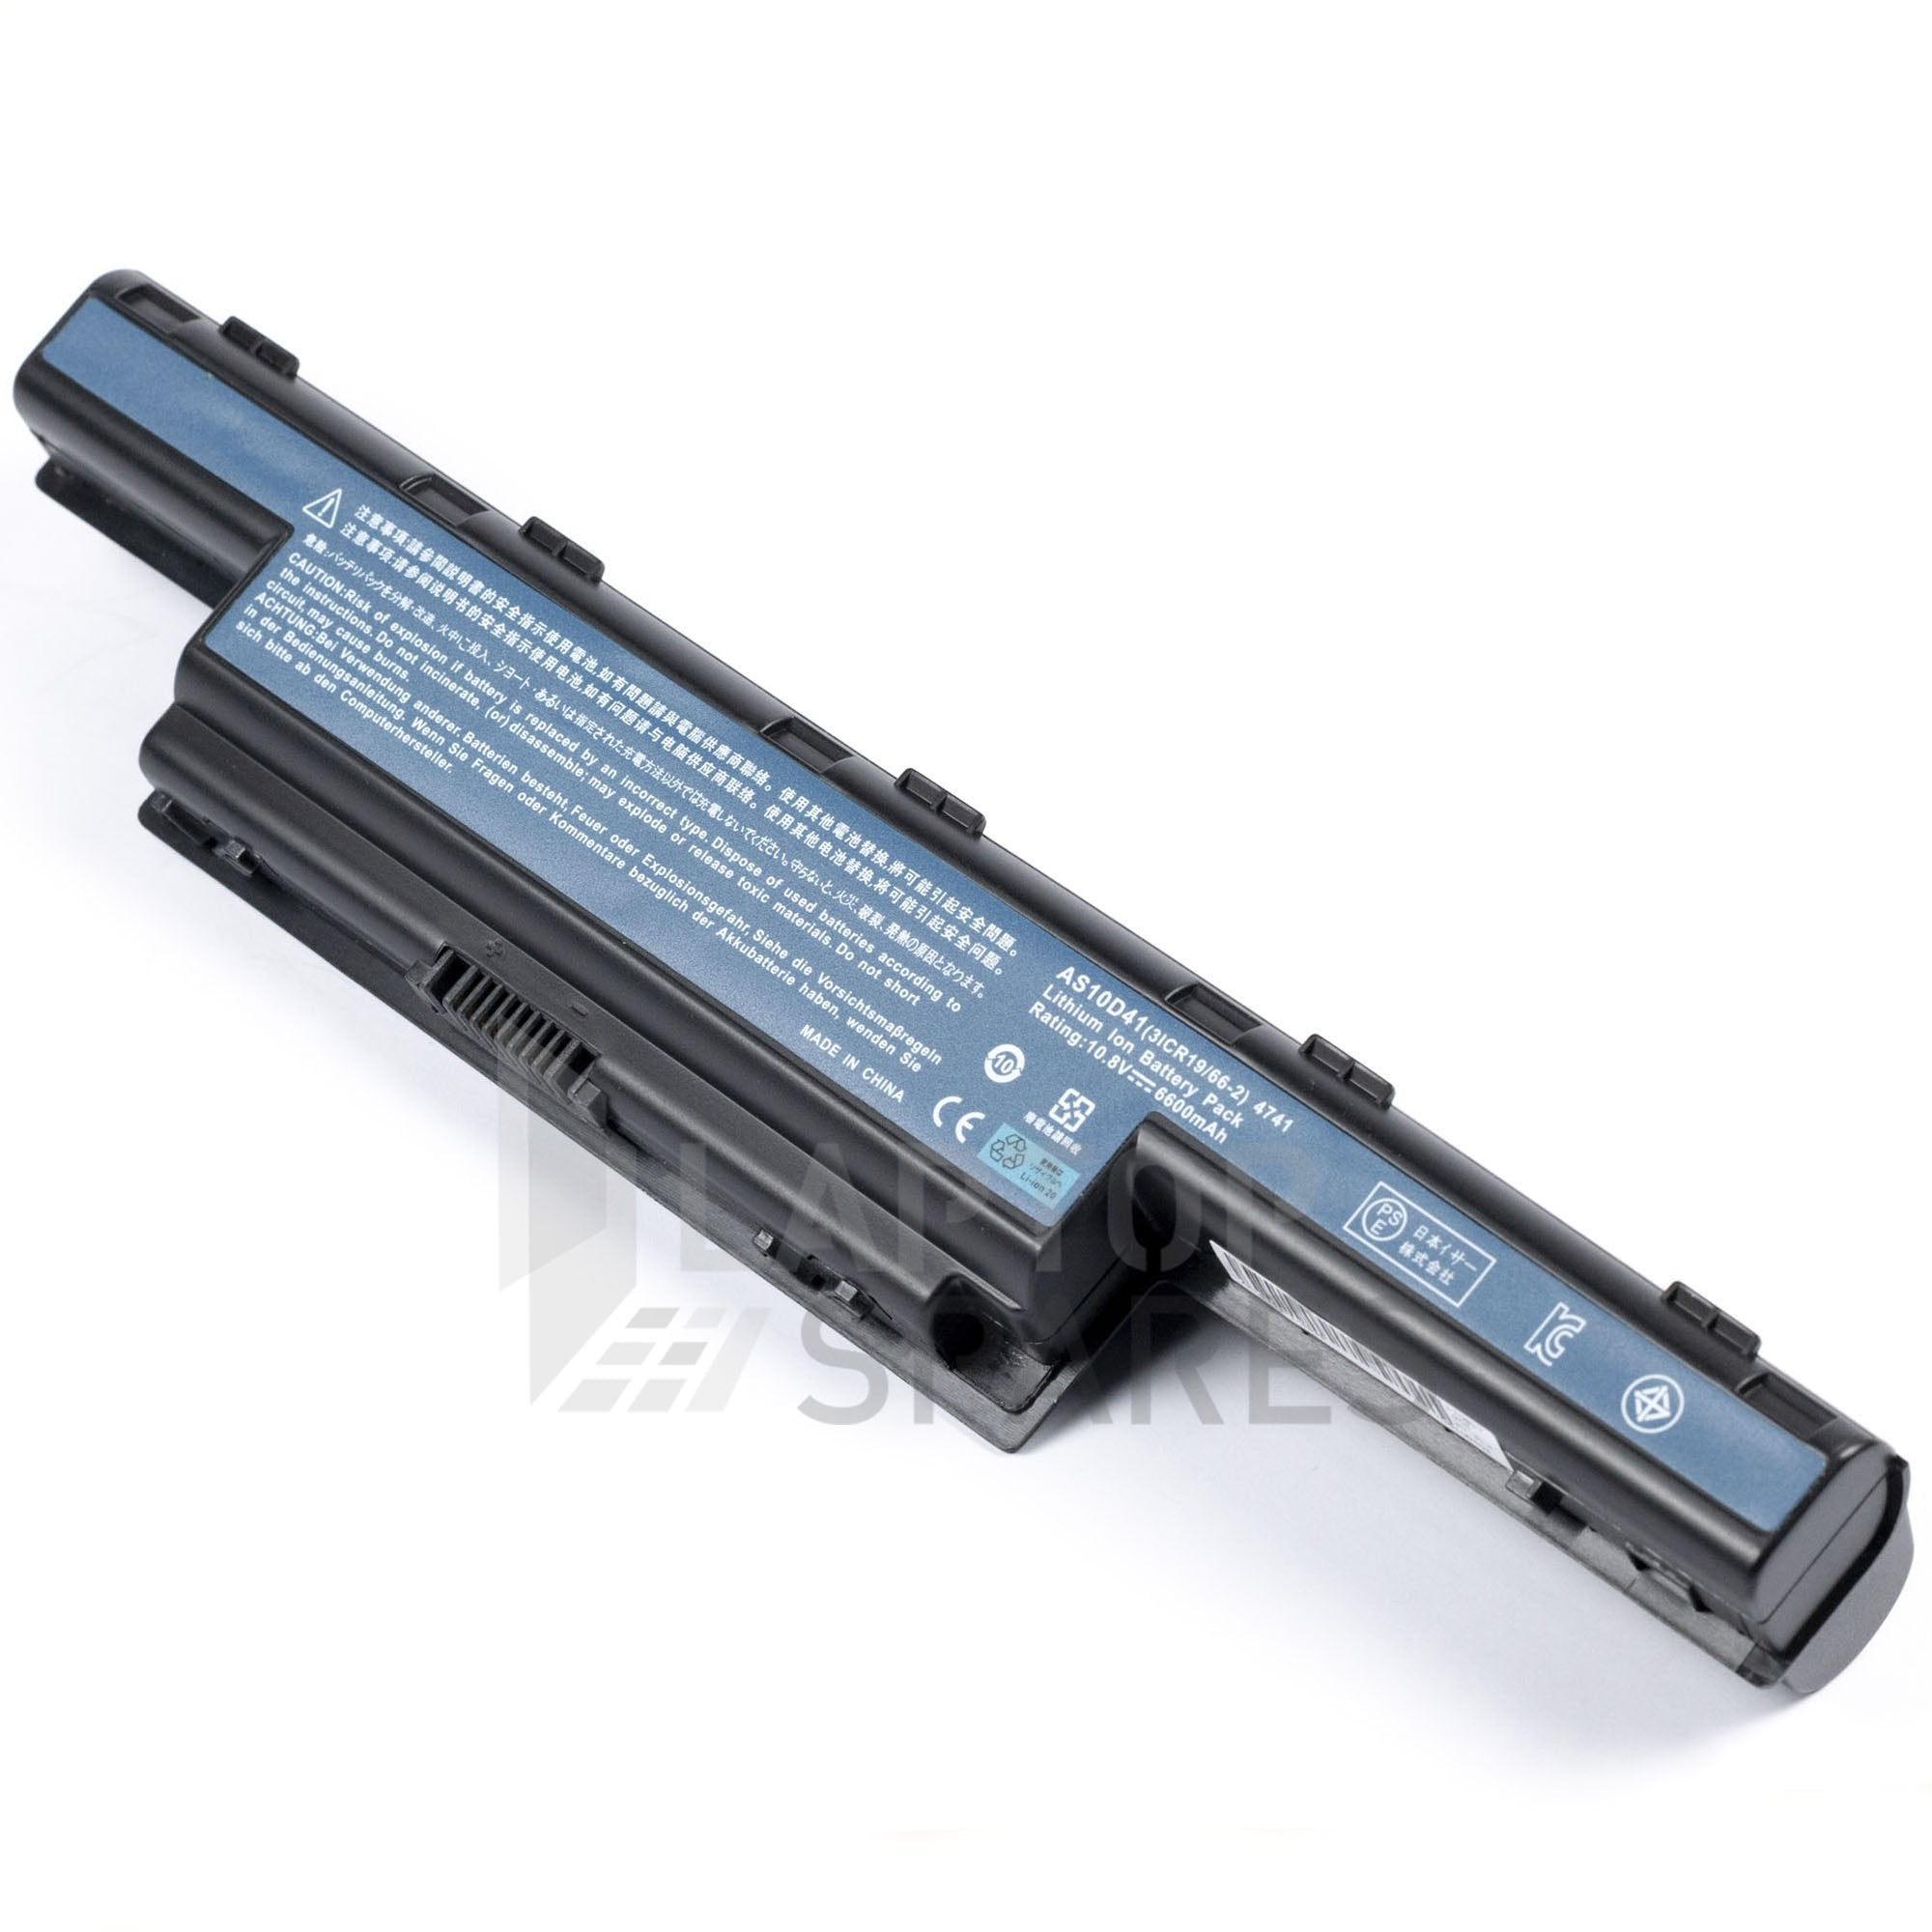 Acer Aspire 5742Z 5742ZG 5750G 6600mAh 9 Cell Battery